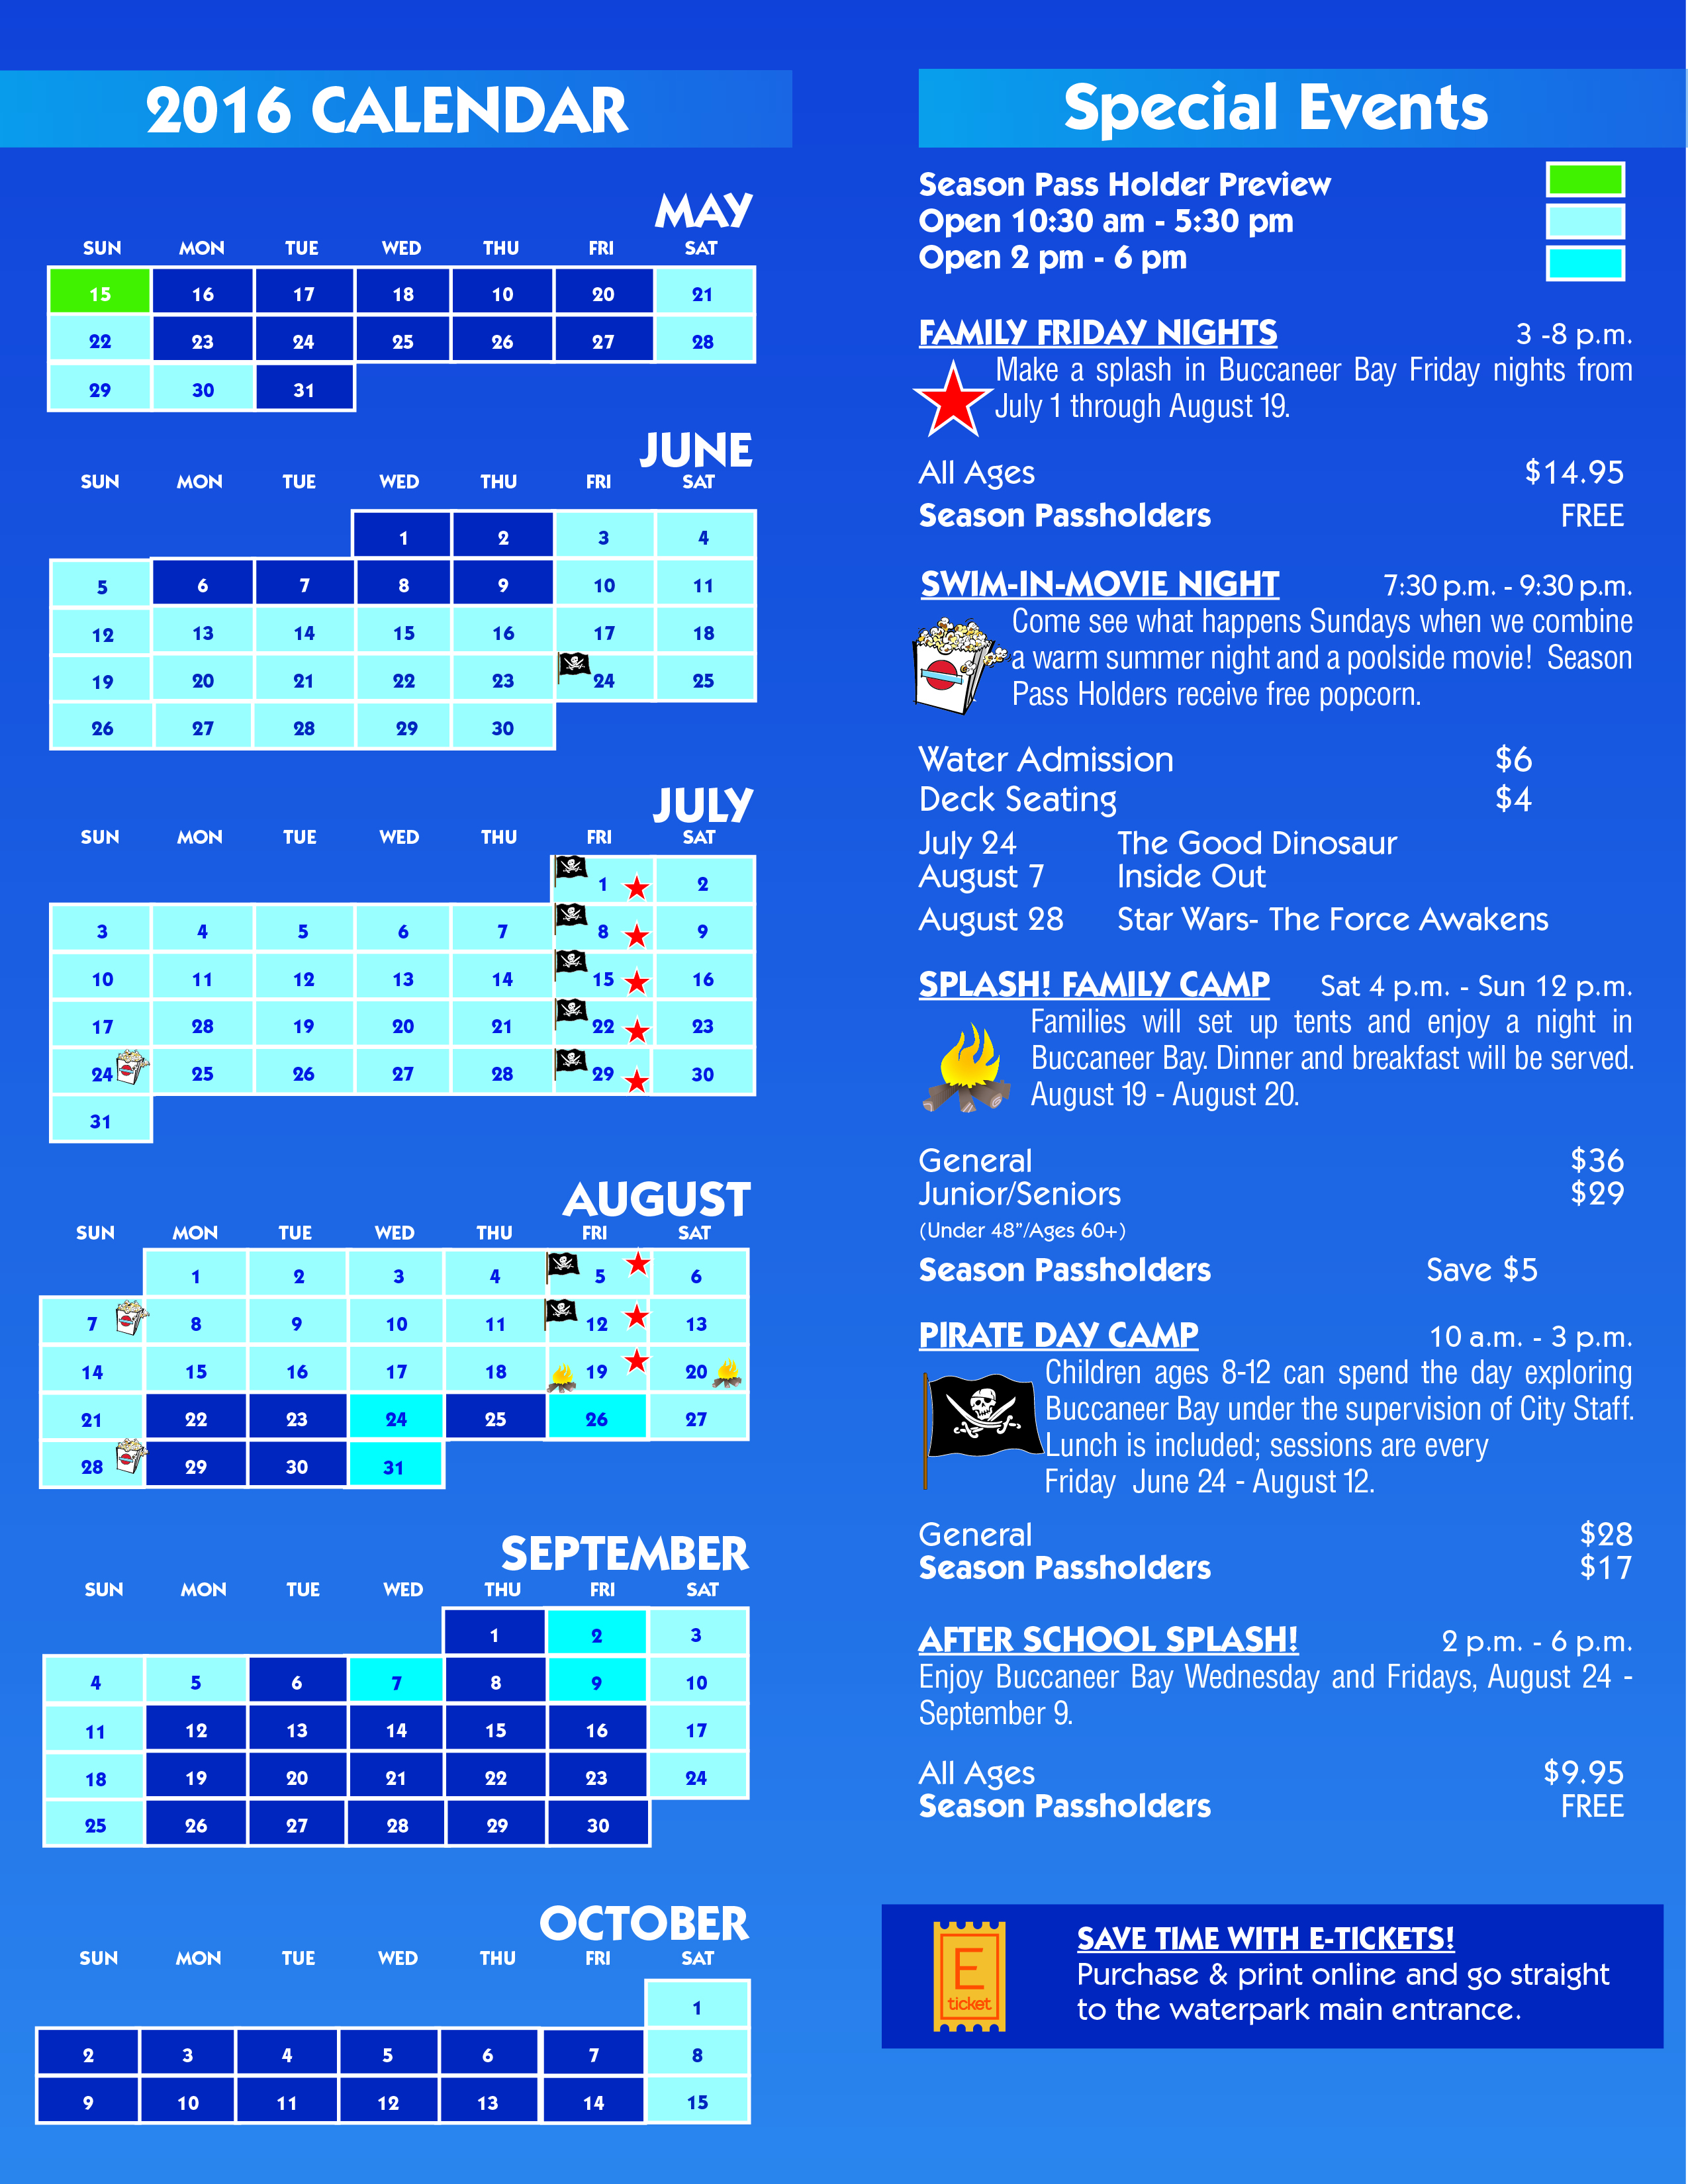 2016 Calendar and special events